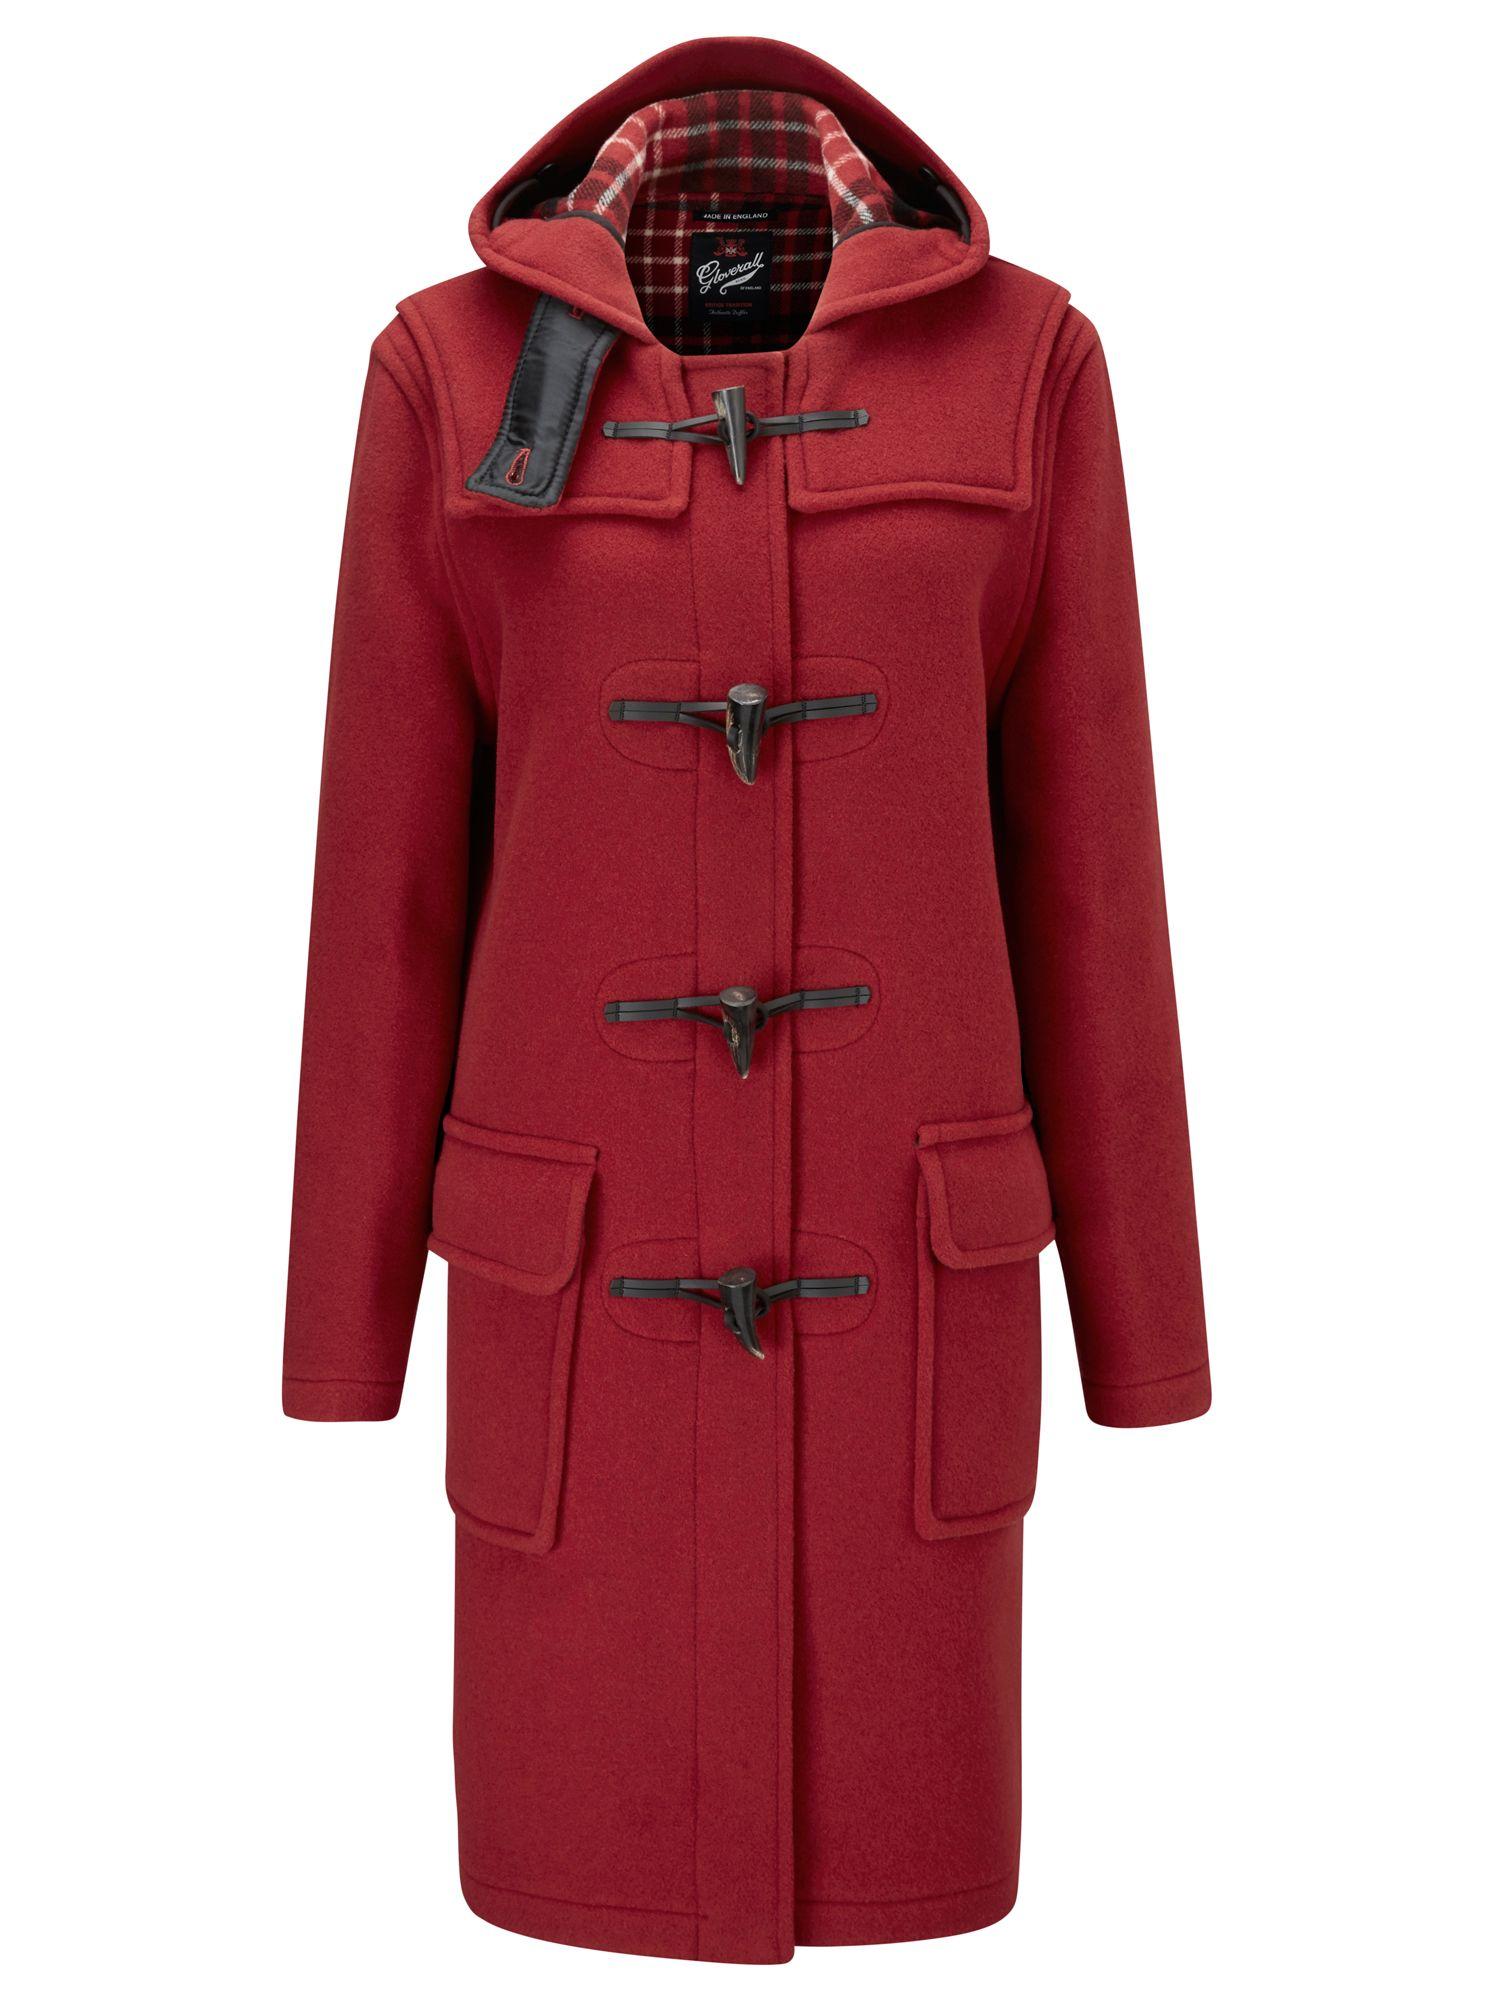 Gloverall Long Original Fit Duffle Coat Red